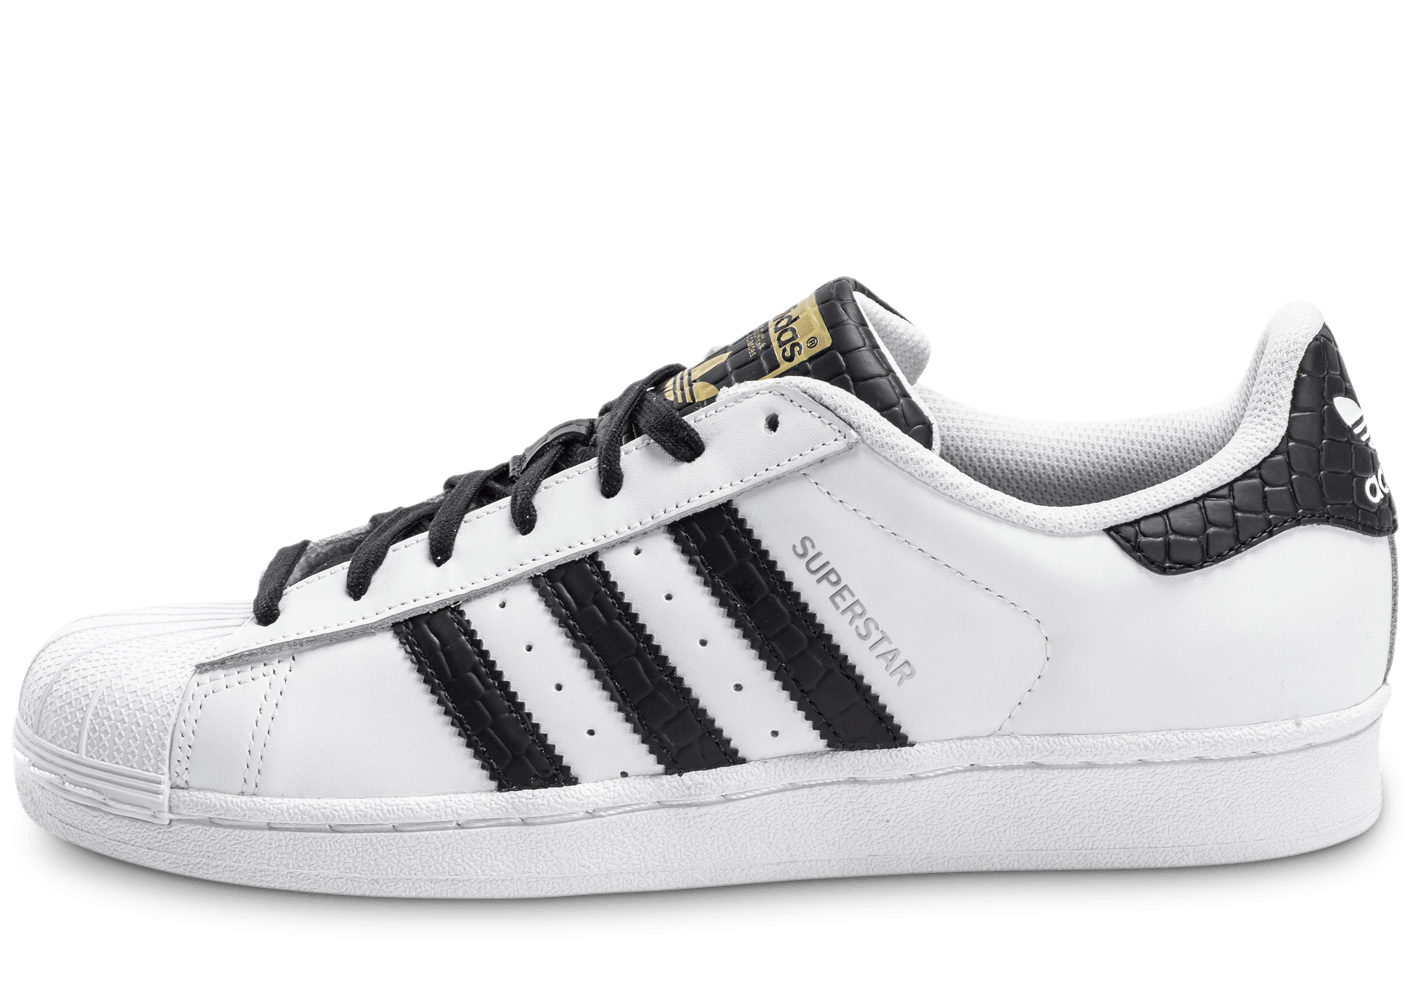 new arrival ac311 327eb adidas superstar blanche,chaussures adidas superstar cuir blanche et noire  vue exterieure